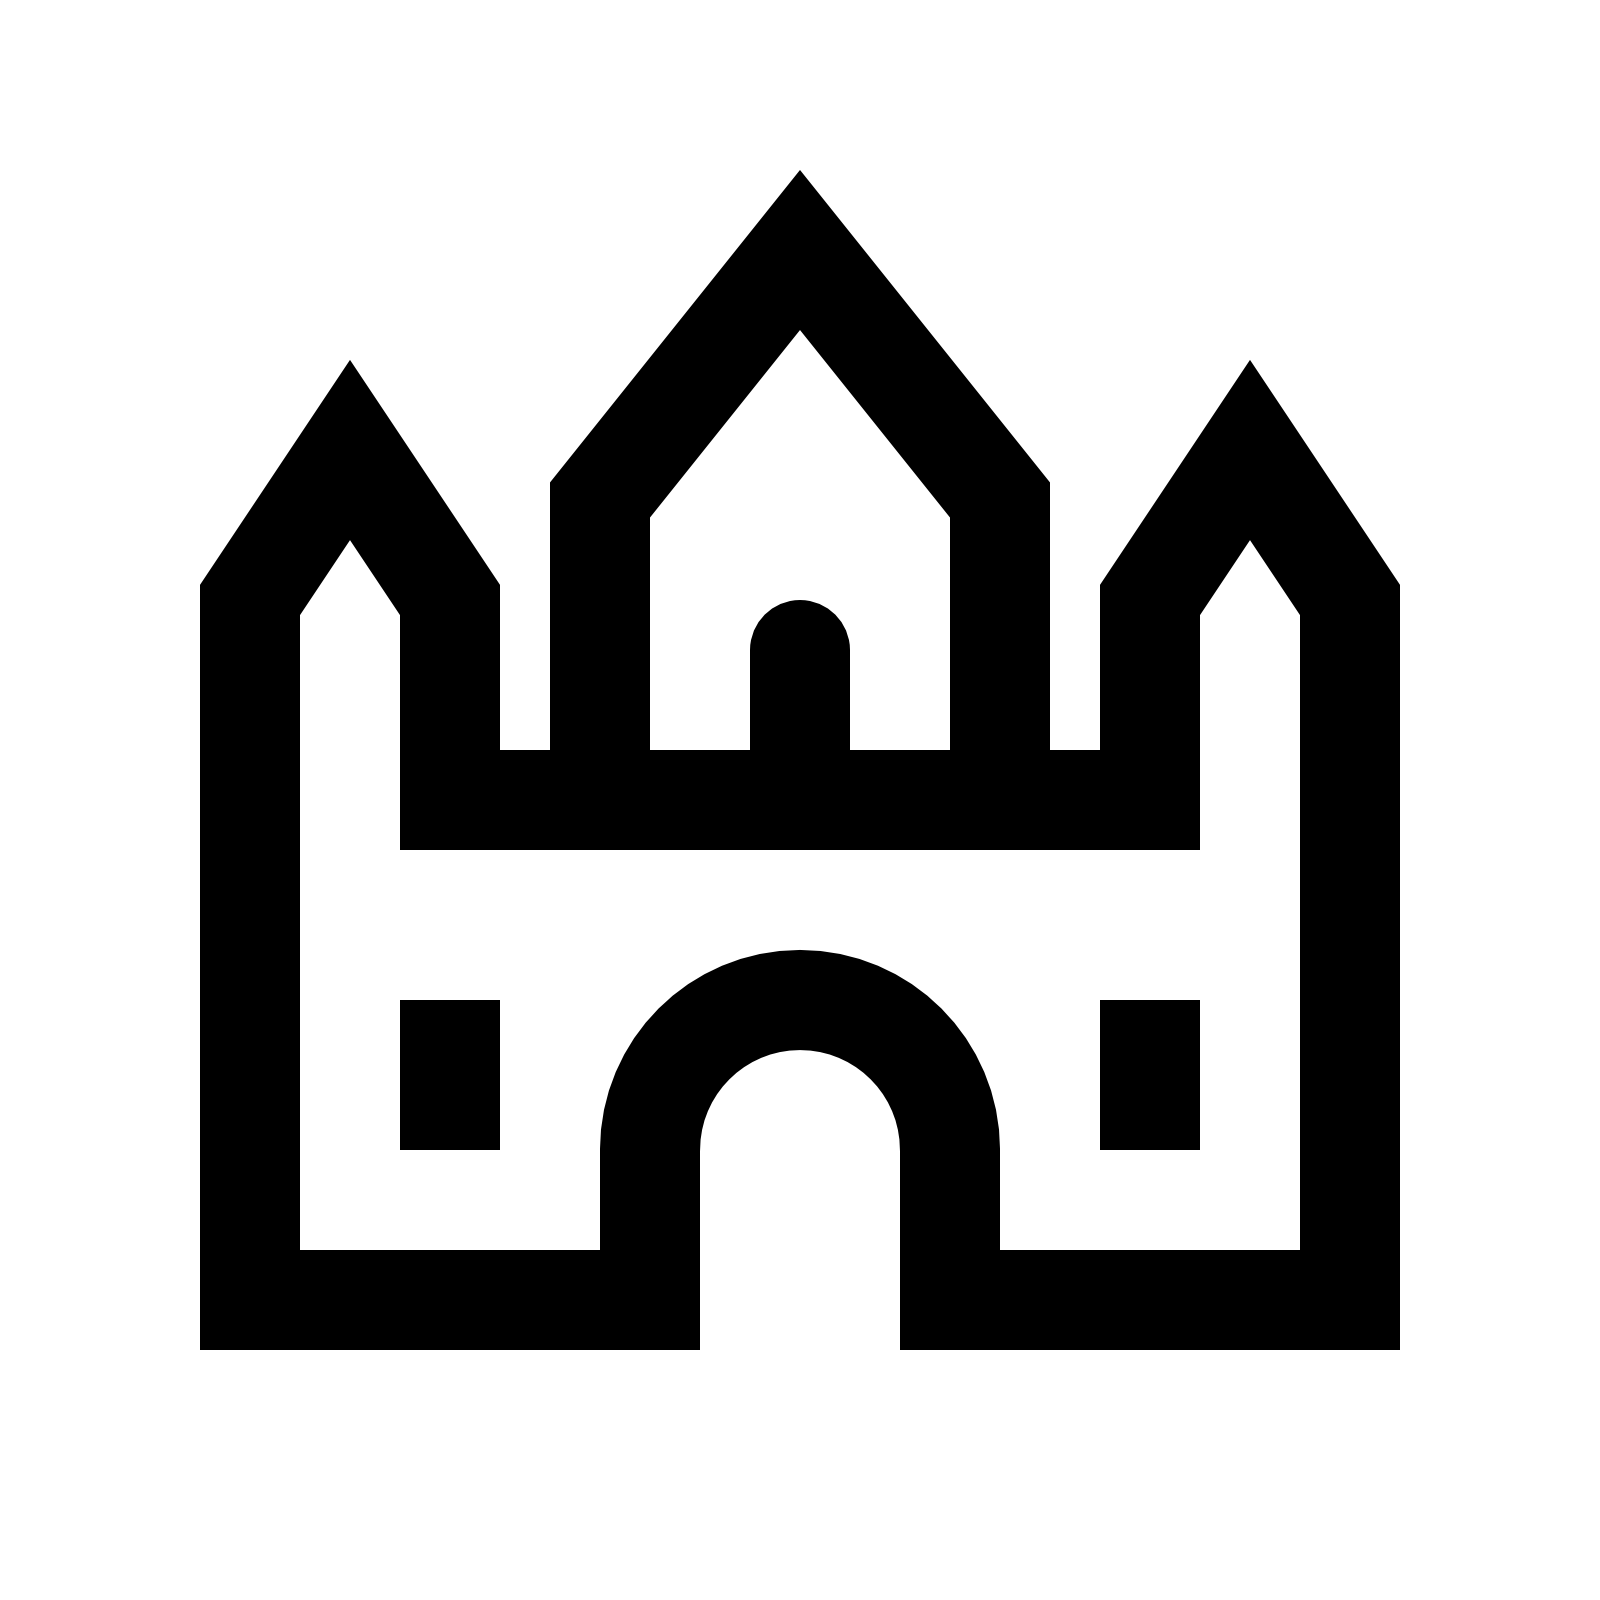 Palace clipart transparent. Png images free download